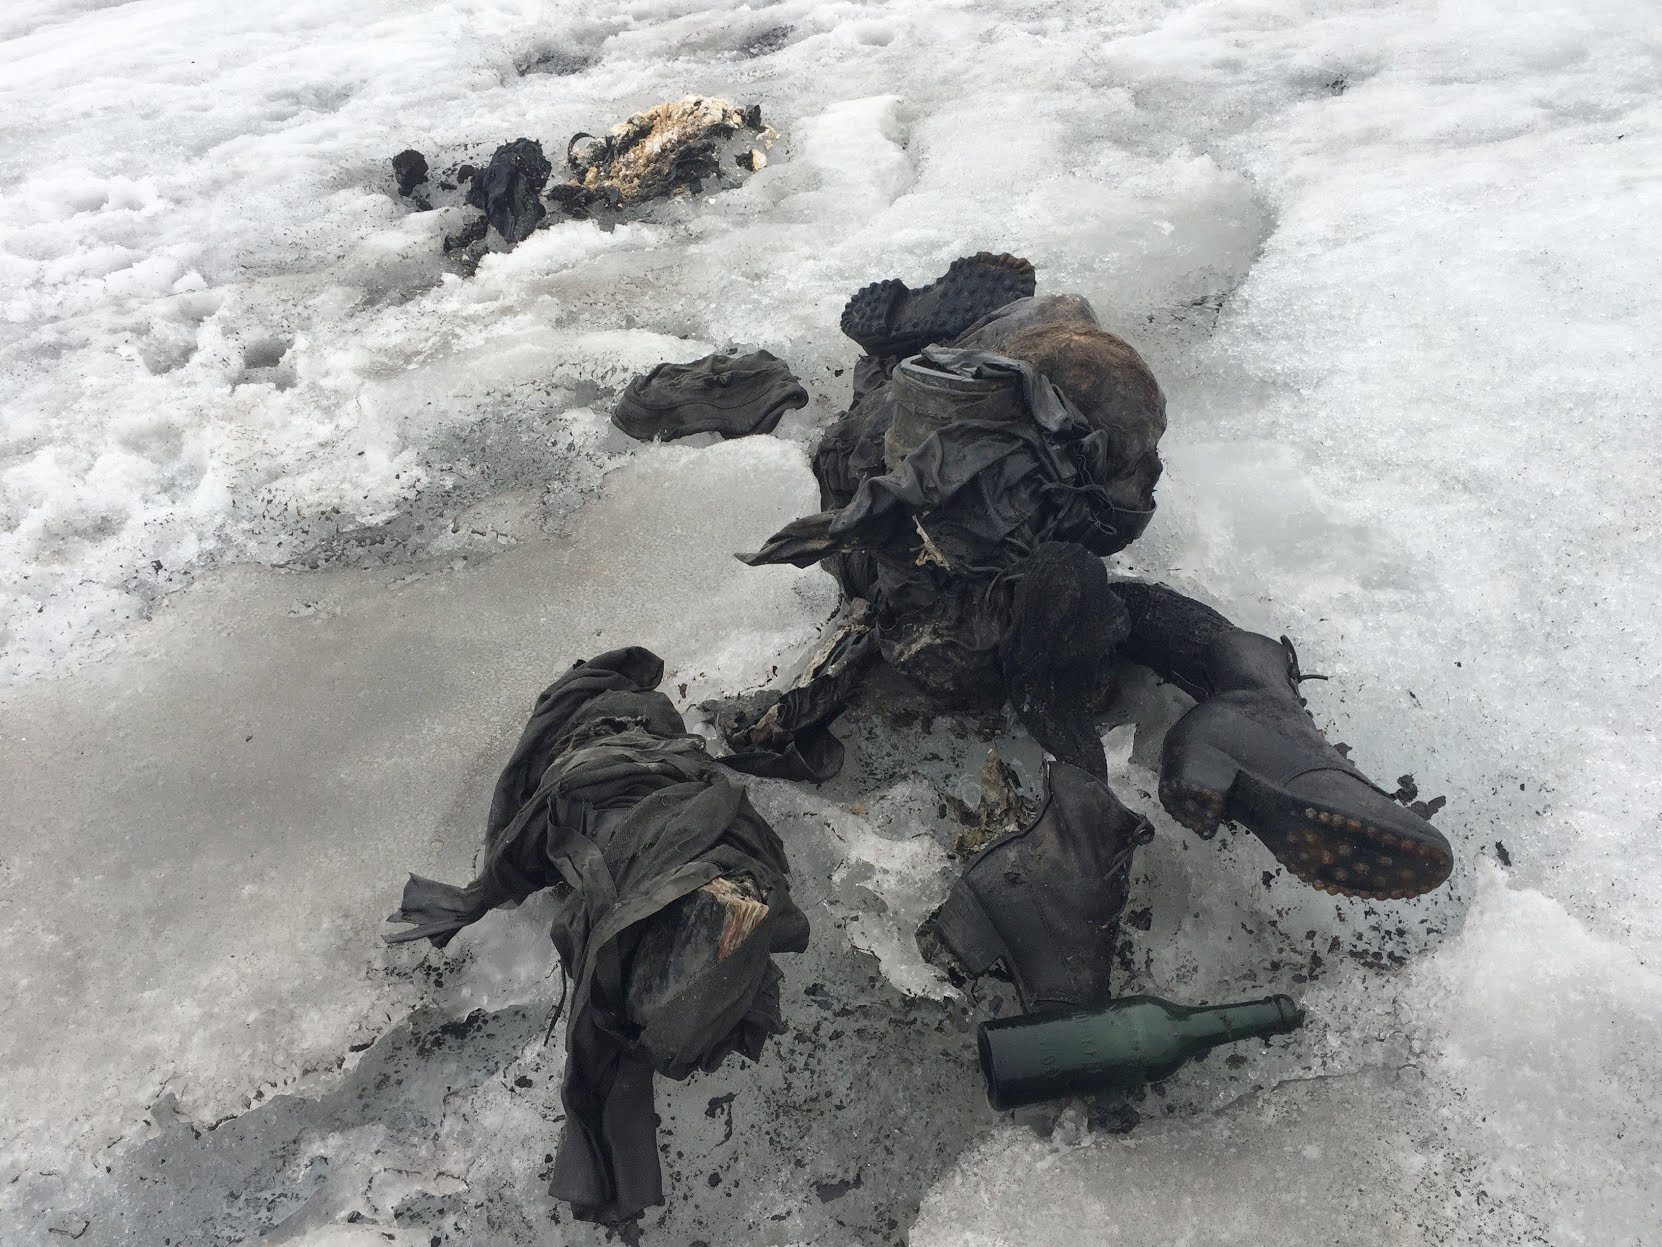 A glacier melted in the Swiss Alps, revealing the bodies of a couple